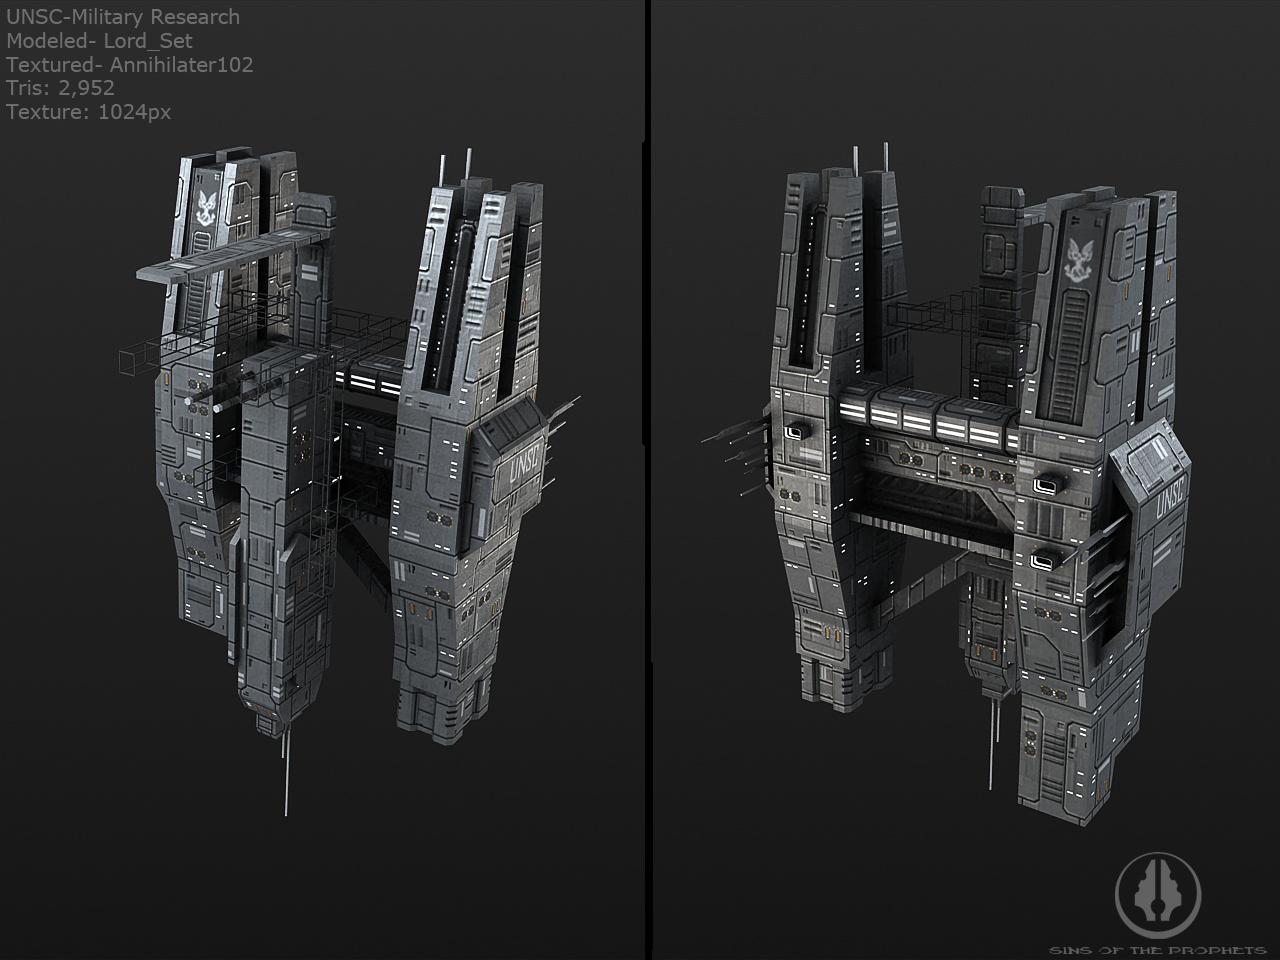 huge unsc space station - photo #46